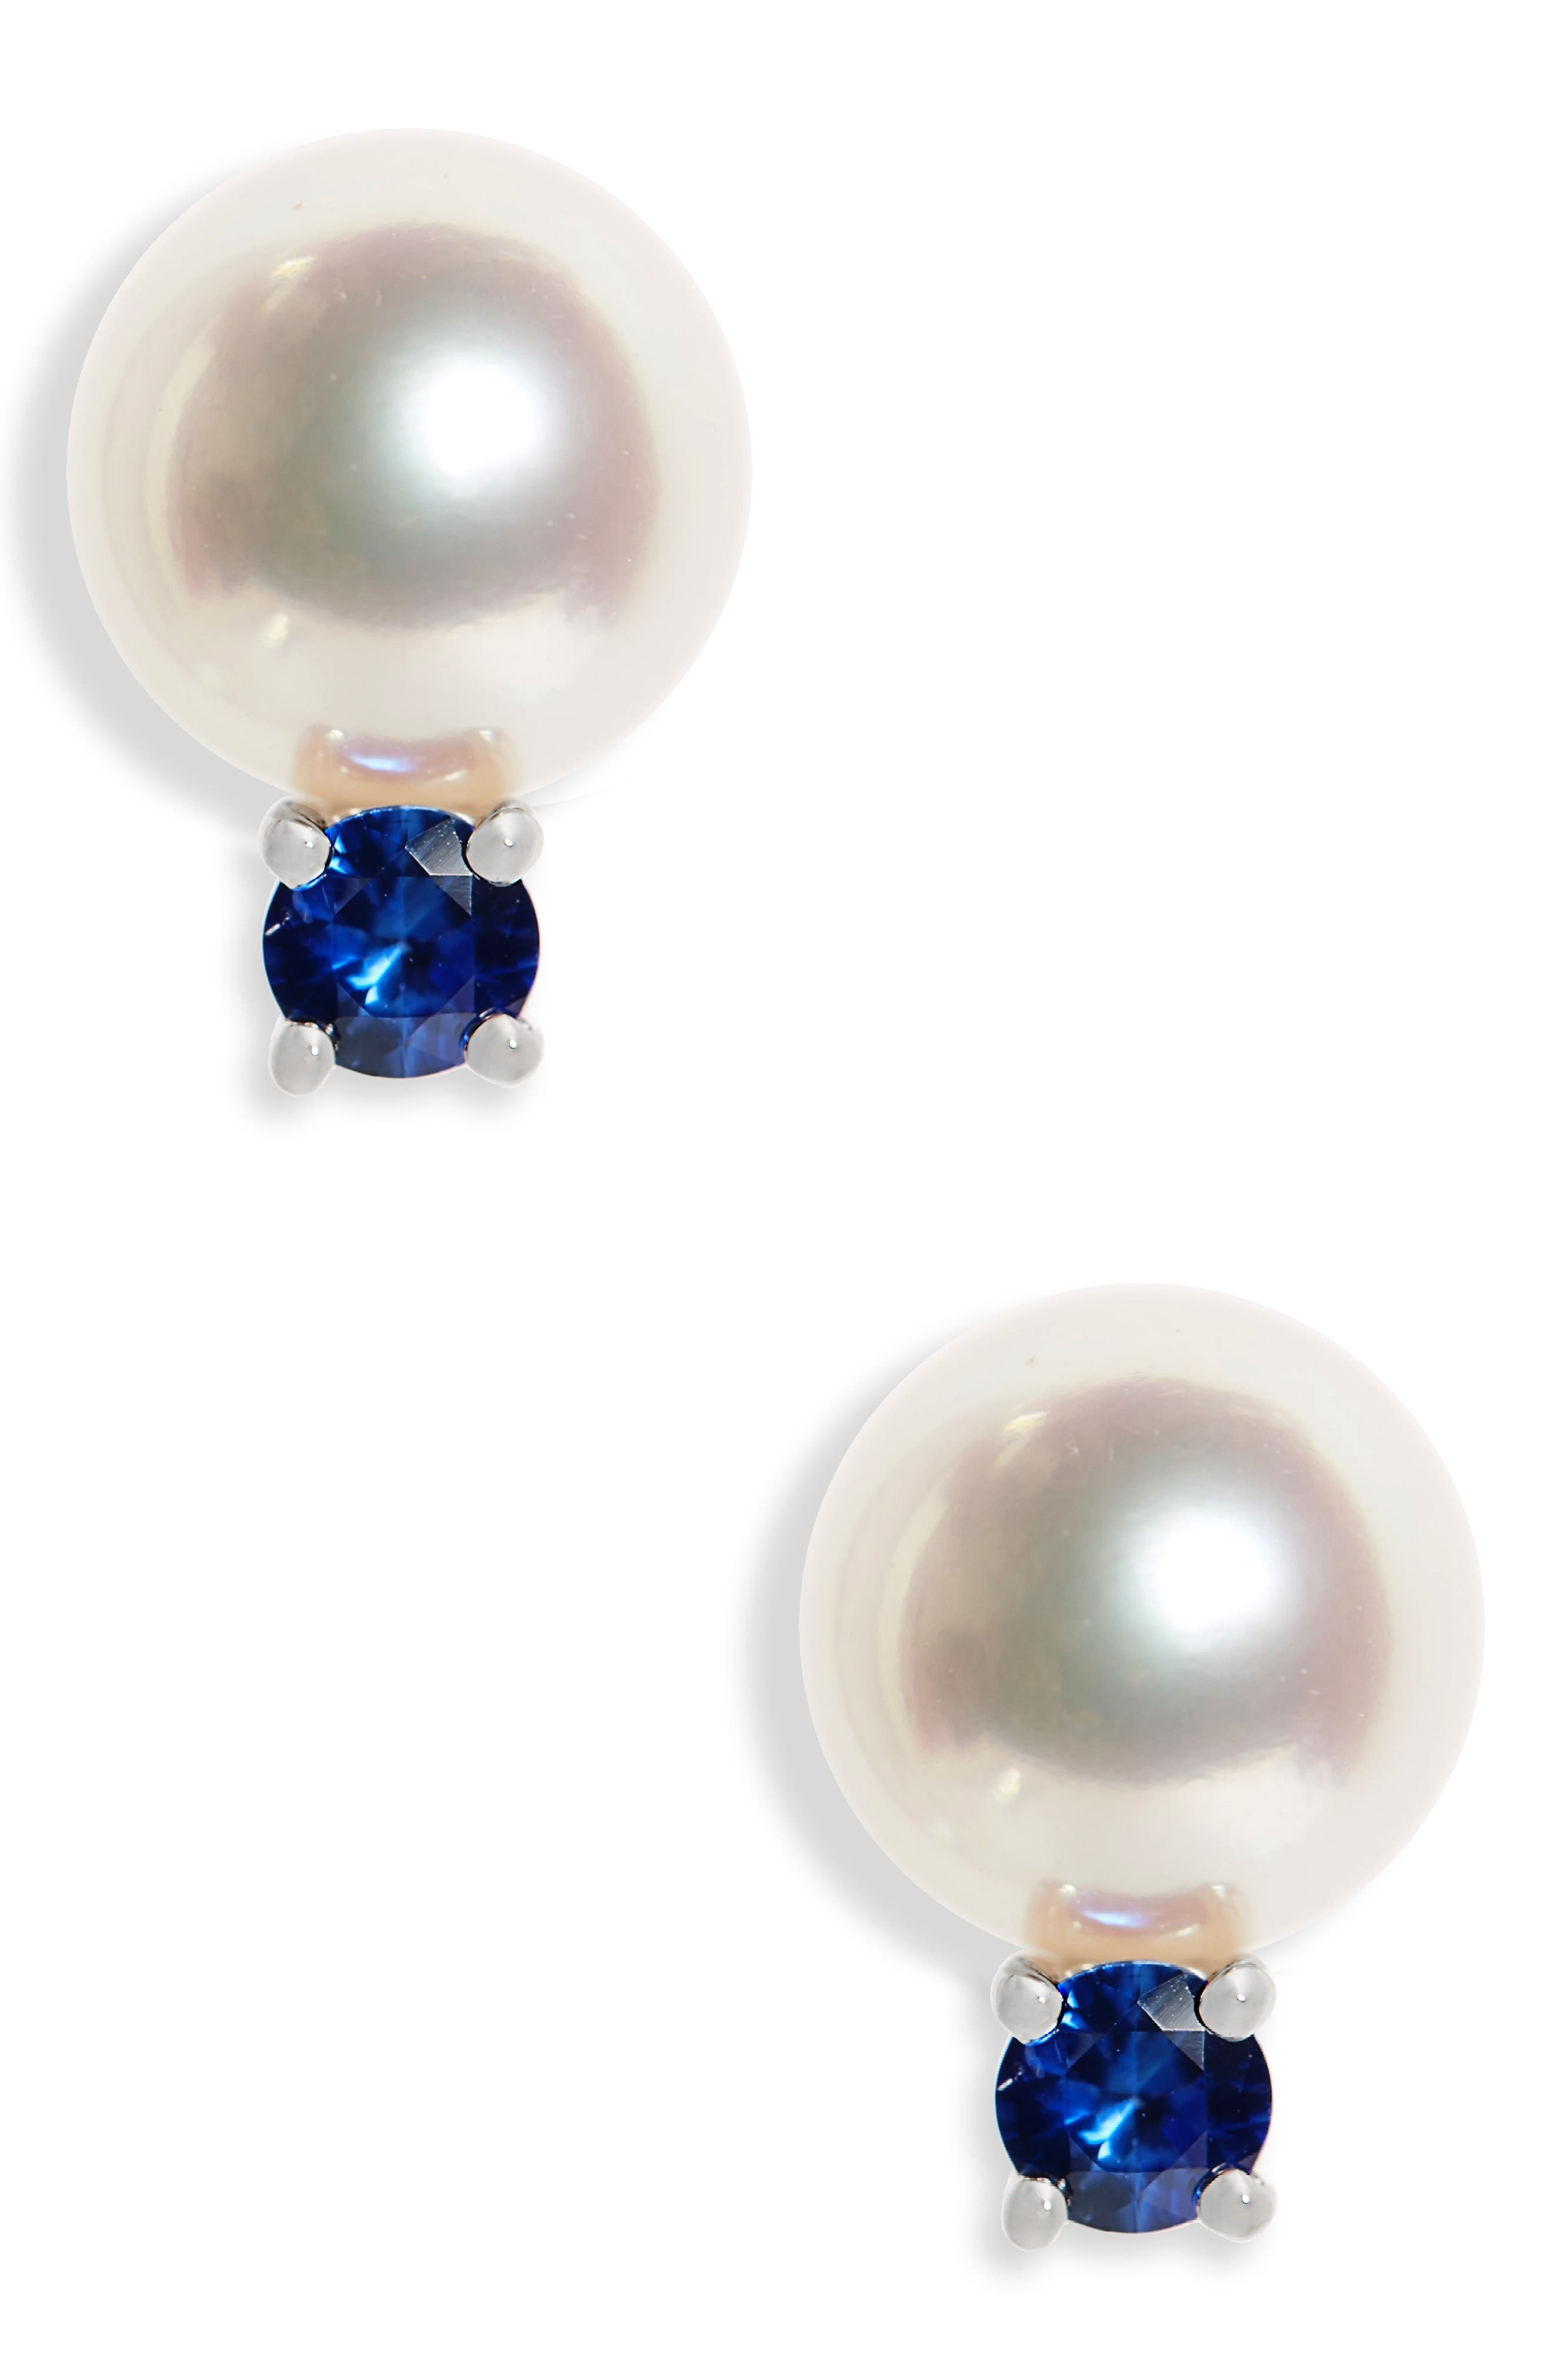 Akoya Pearl & Sapphire Stud Earrings,                         Main,                         color, White Gold